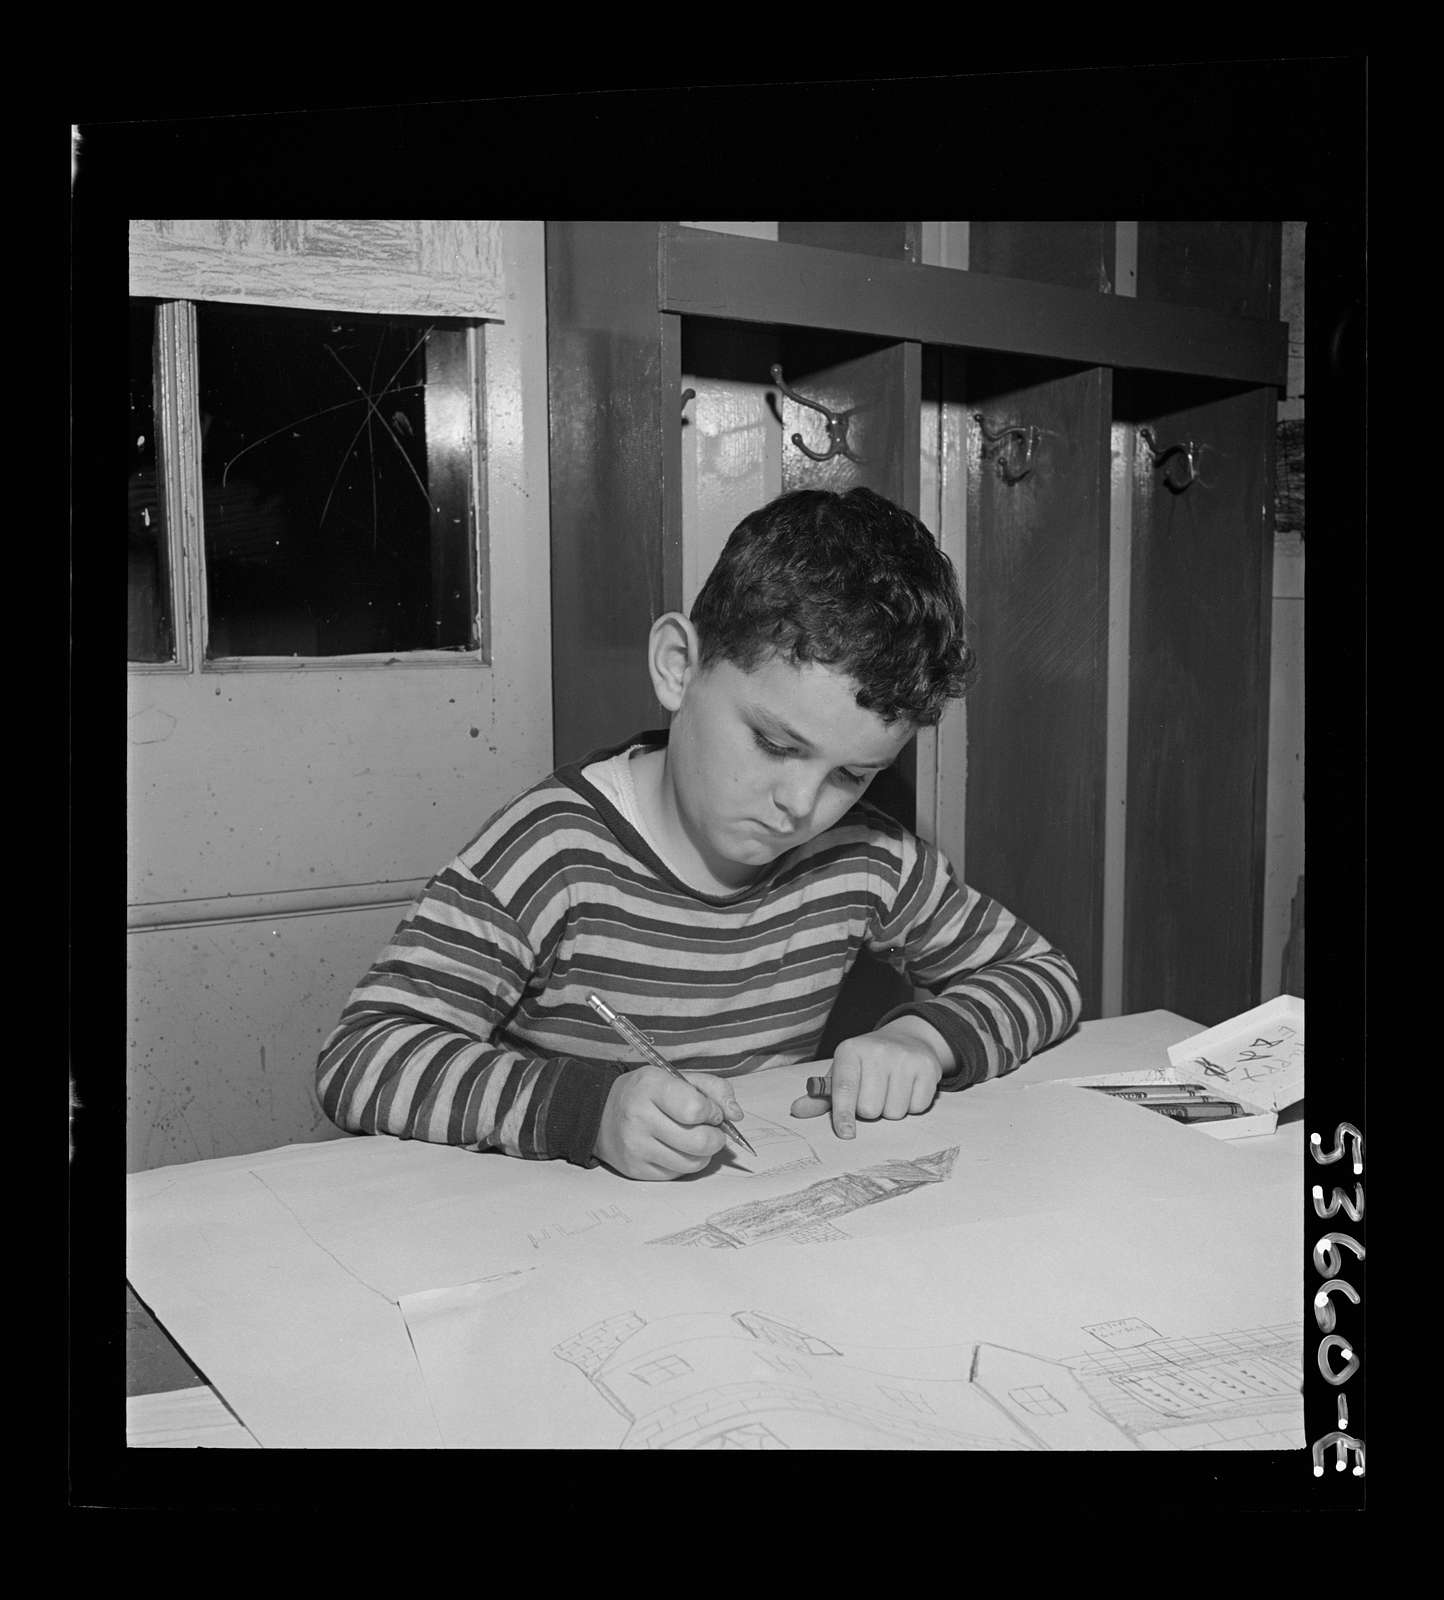 New York, New York. A young draftsman drawing plans for a house and developing his favorite hobby at Greenwich house where he received day care while his mother works